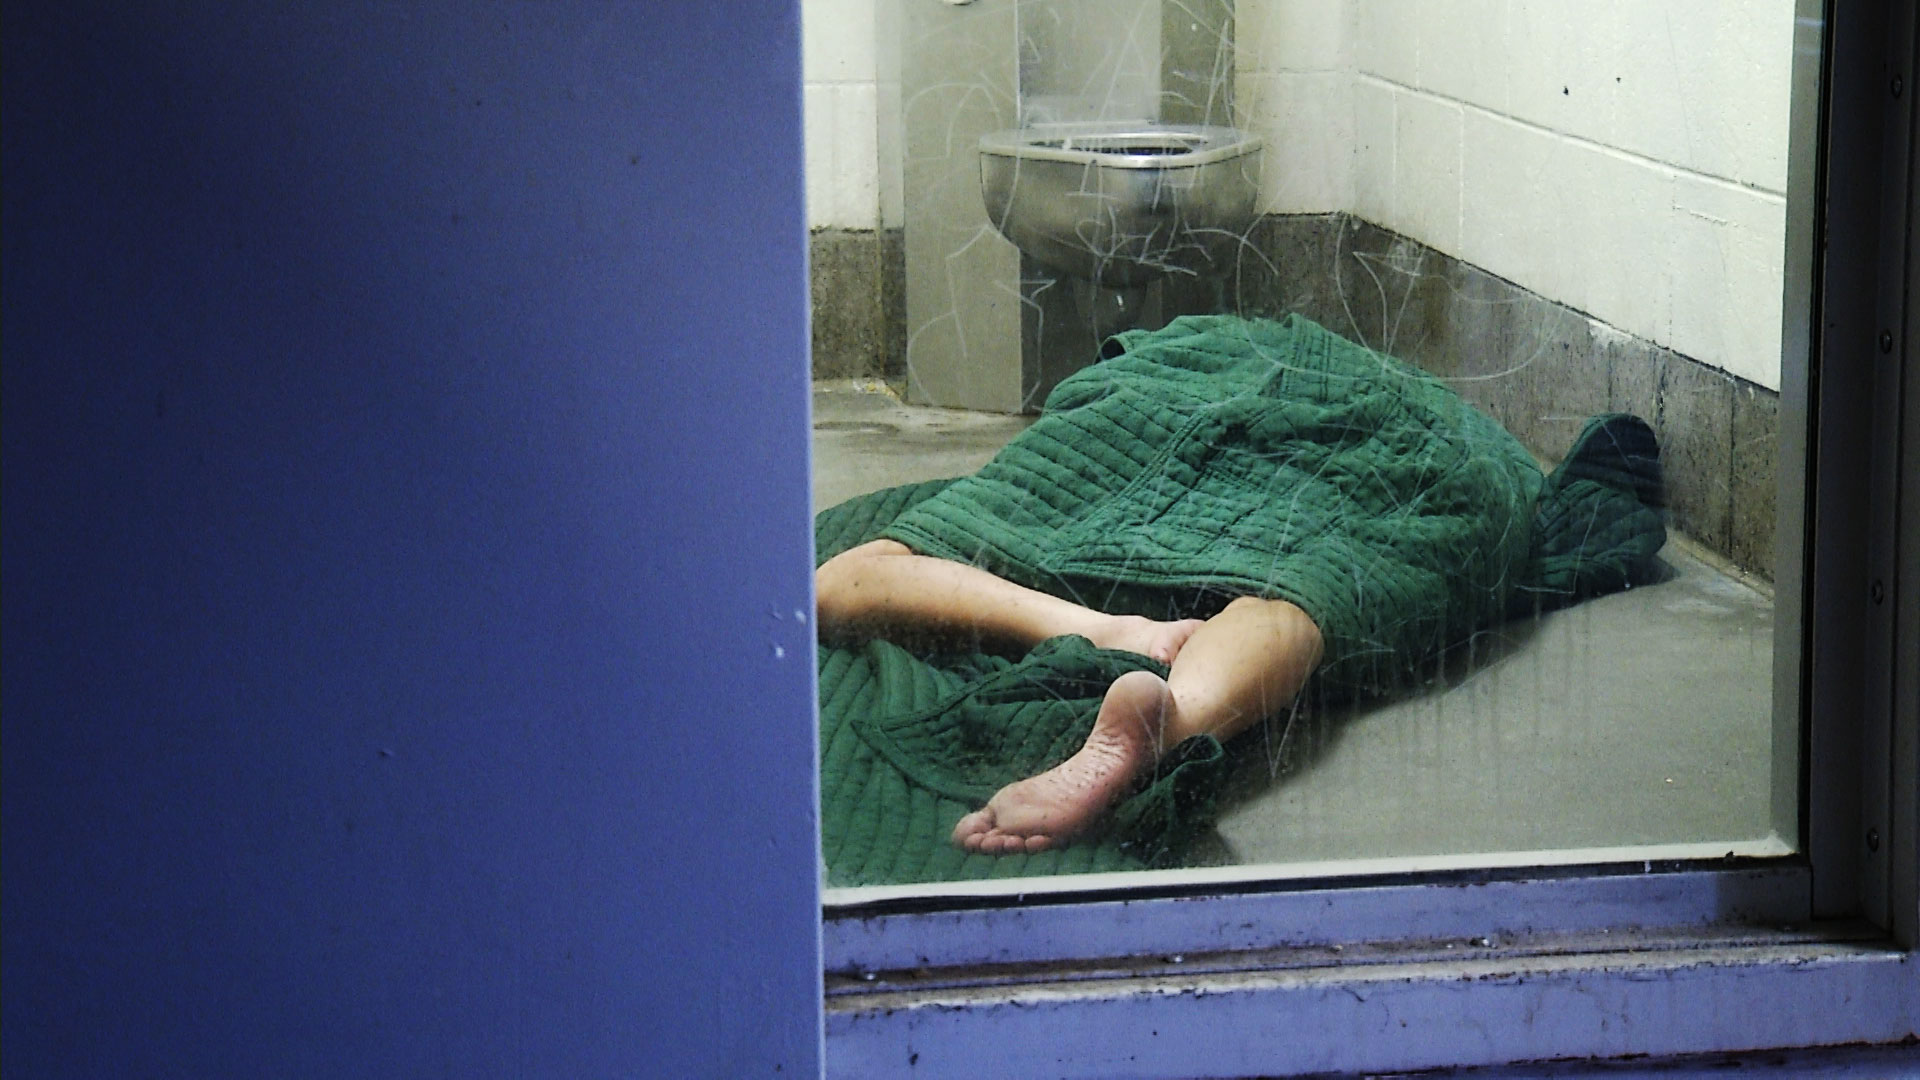 An inmate lies on the floor under a blanket in his cell at the Pima County Adult Detention Complex.